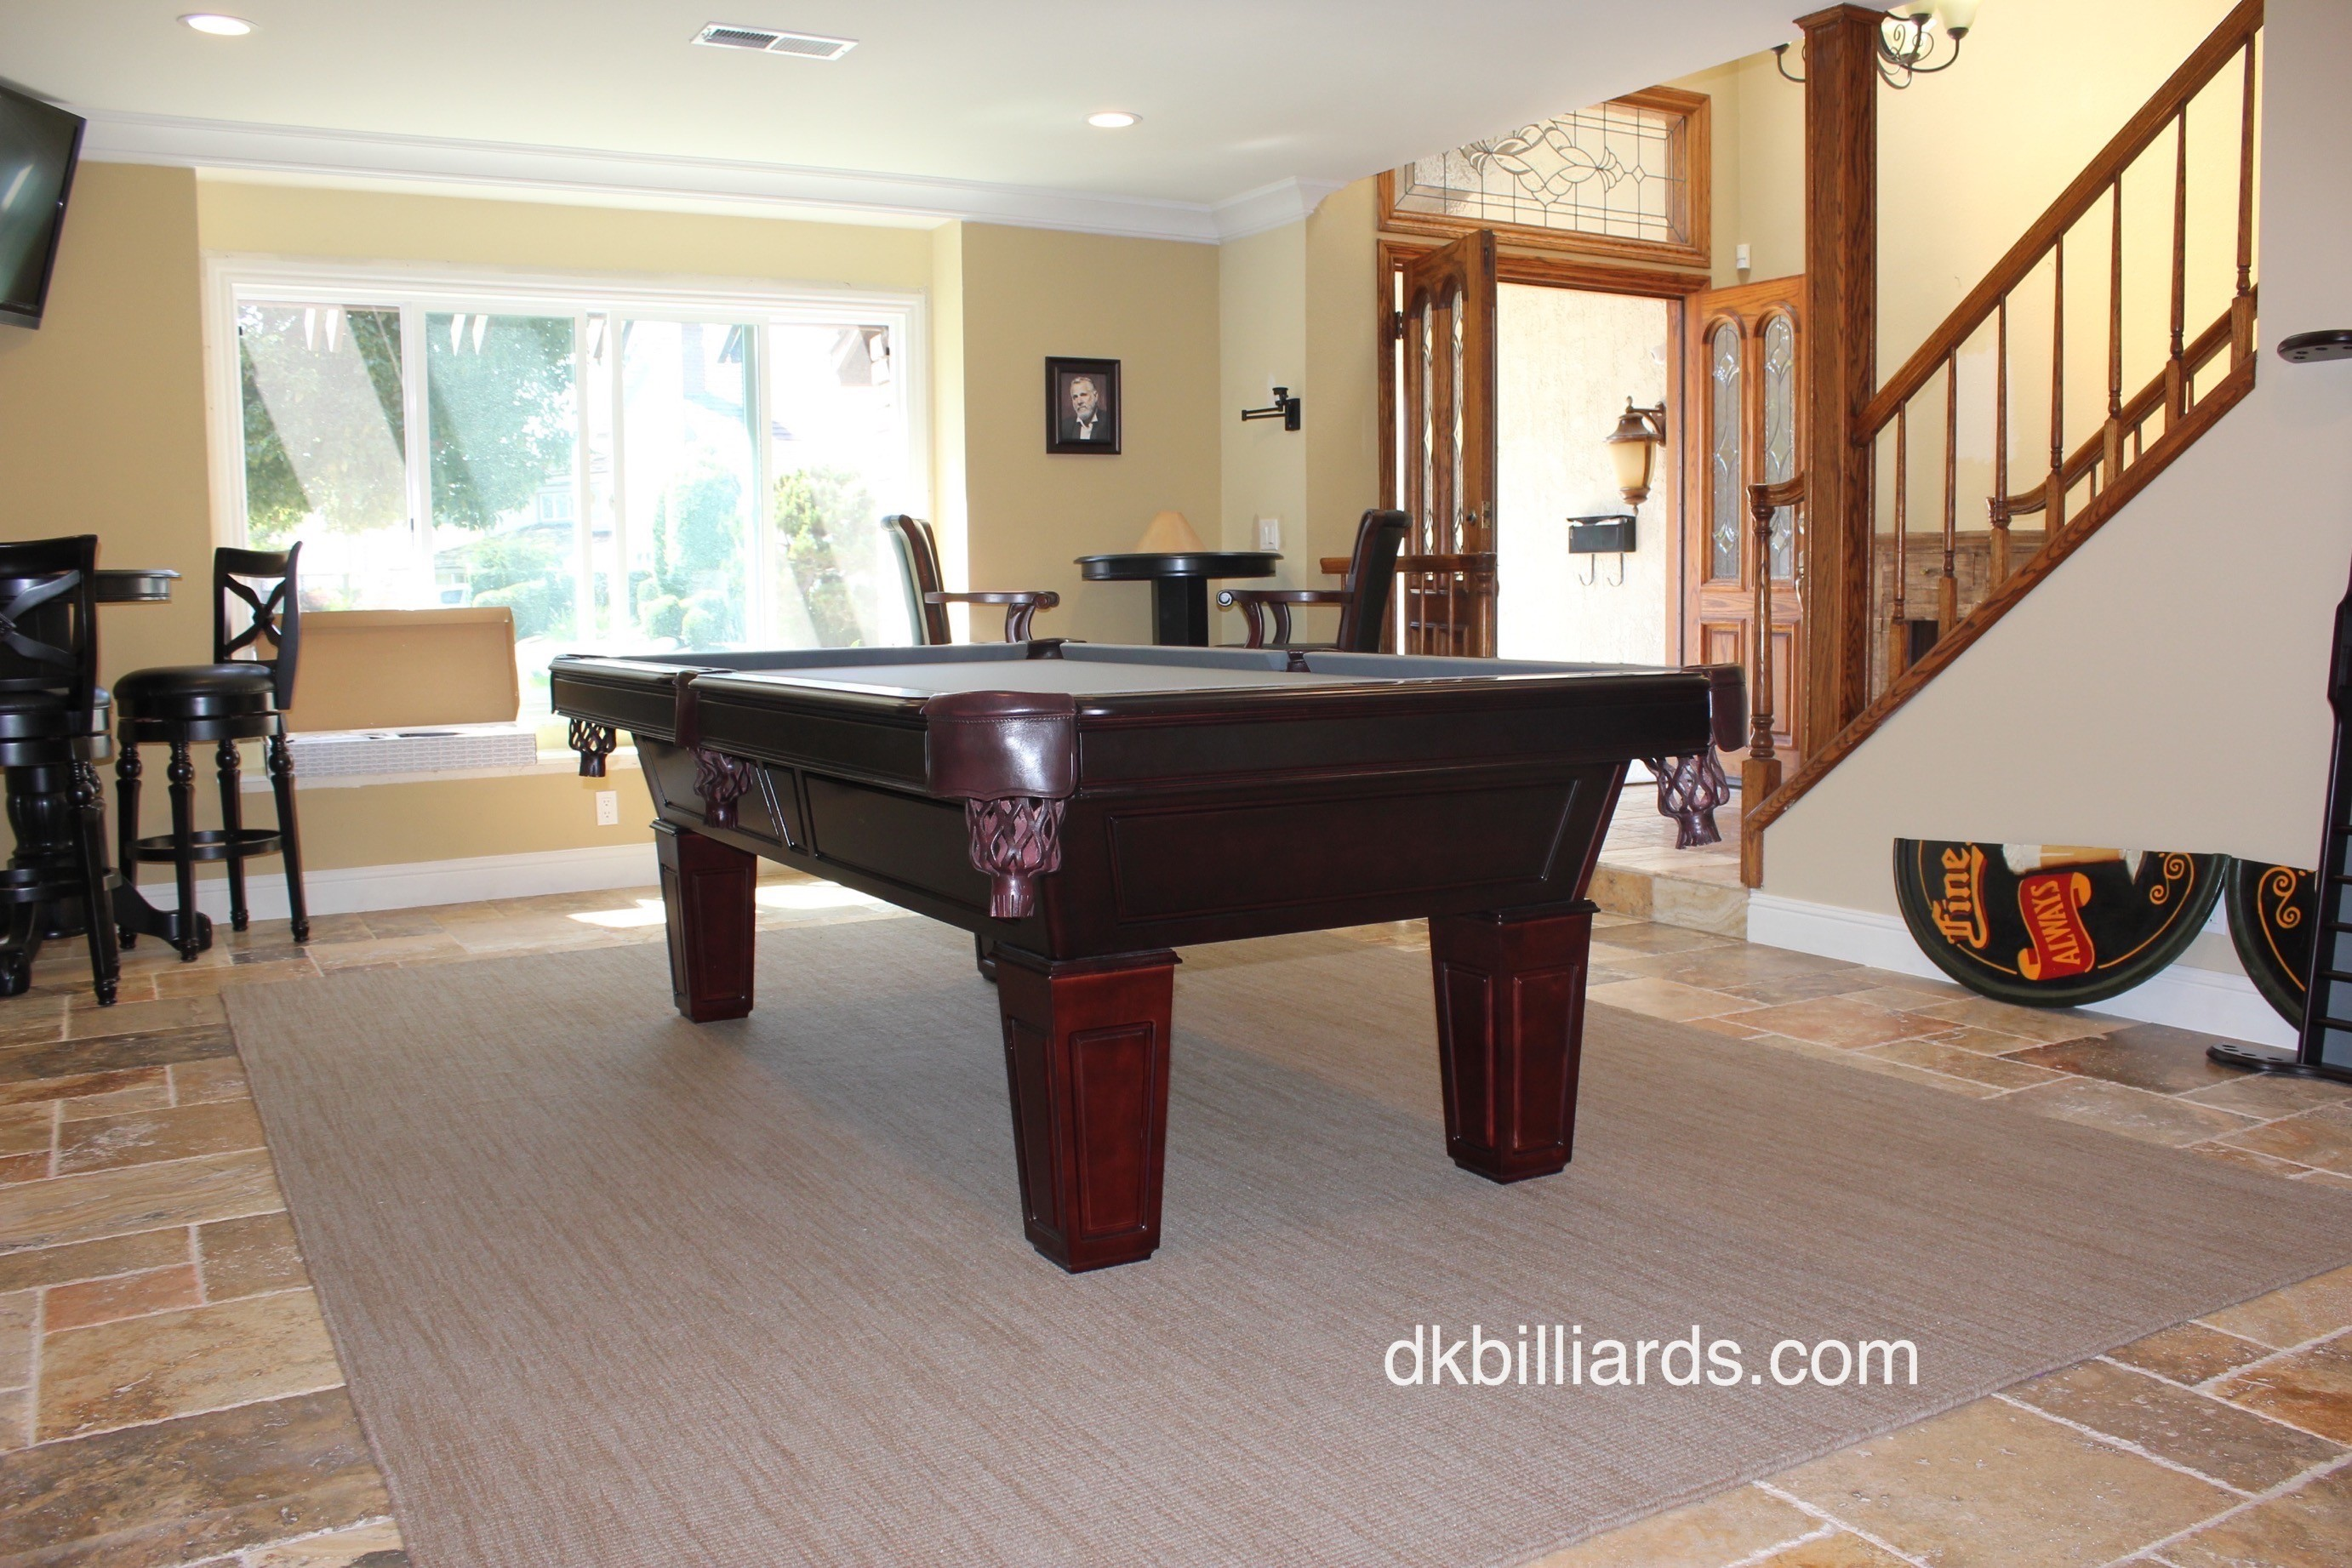 Placing A Pool Table On A Rug